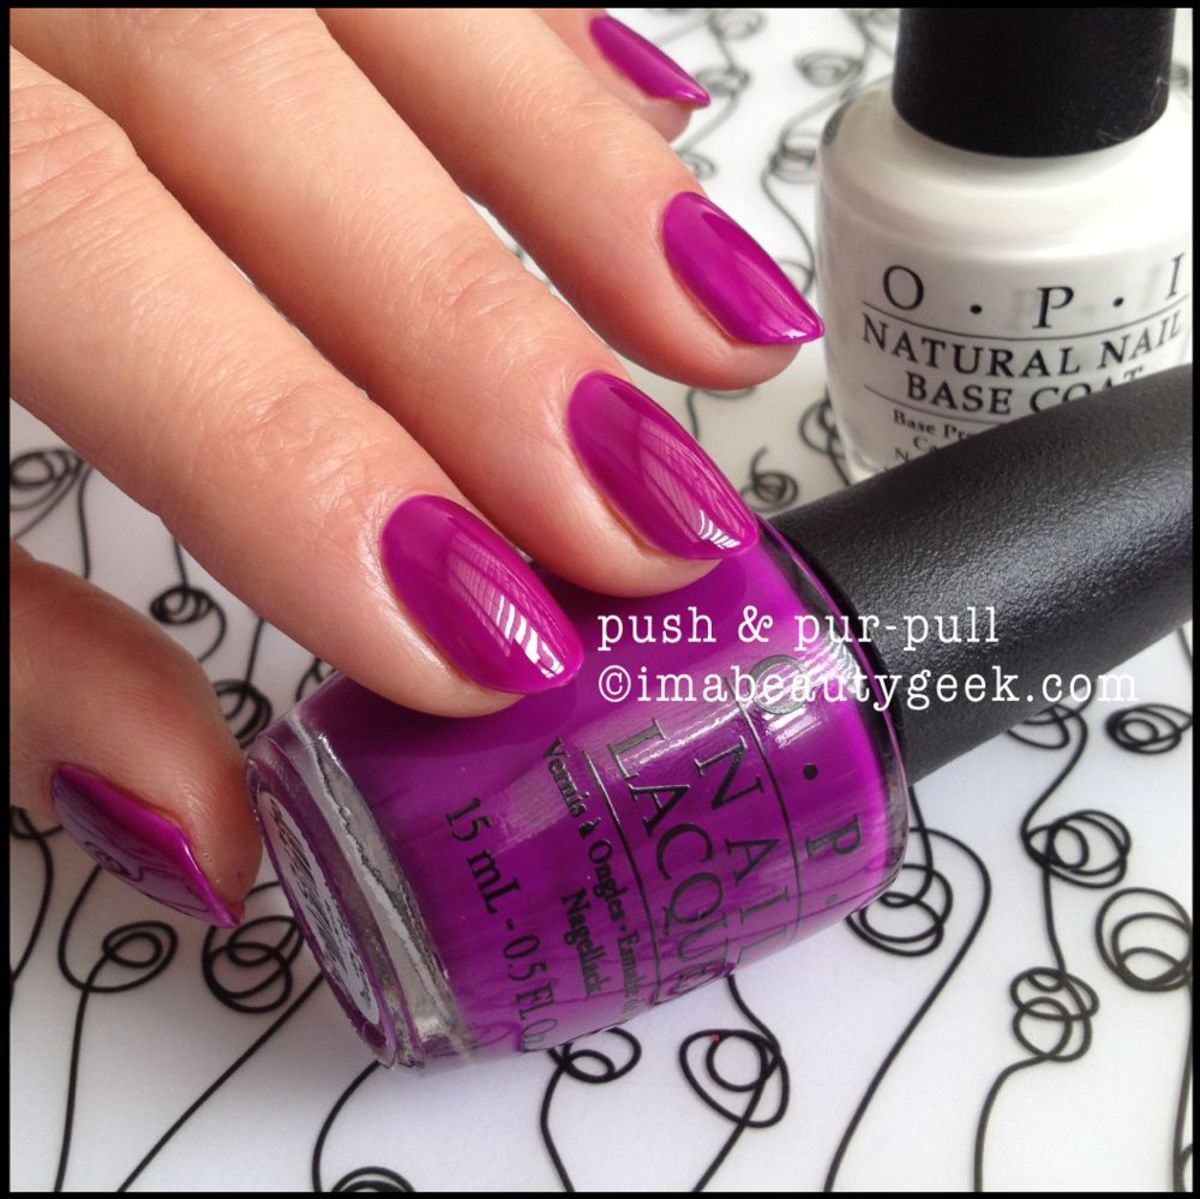 OPI Push & Pur-Pull OPI Neon 2014